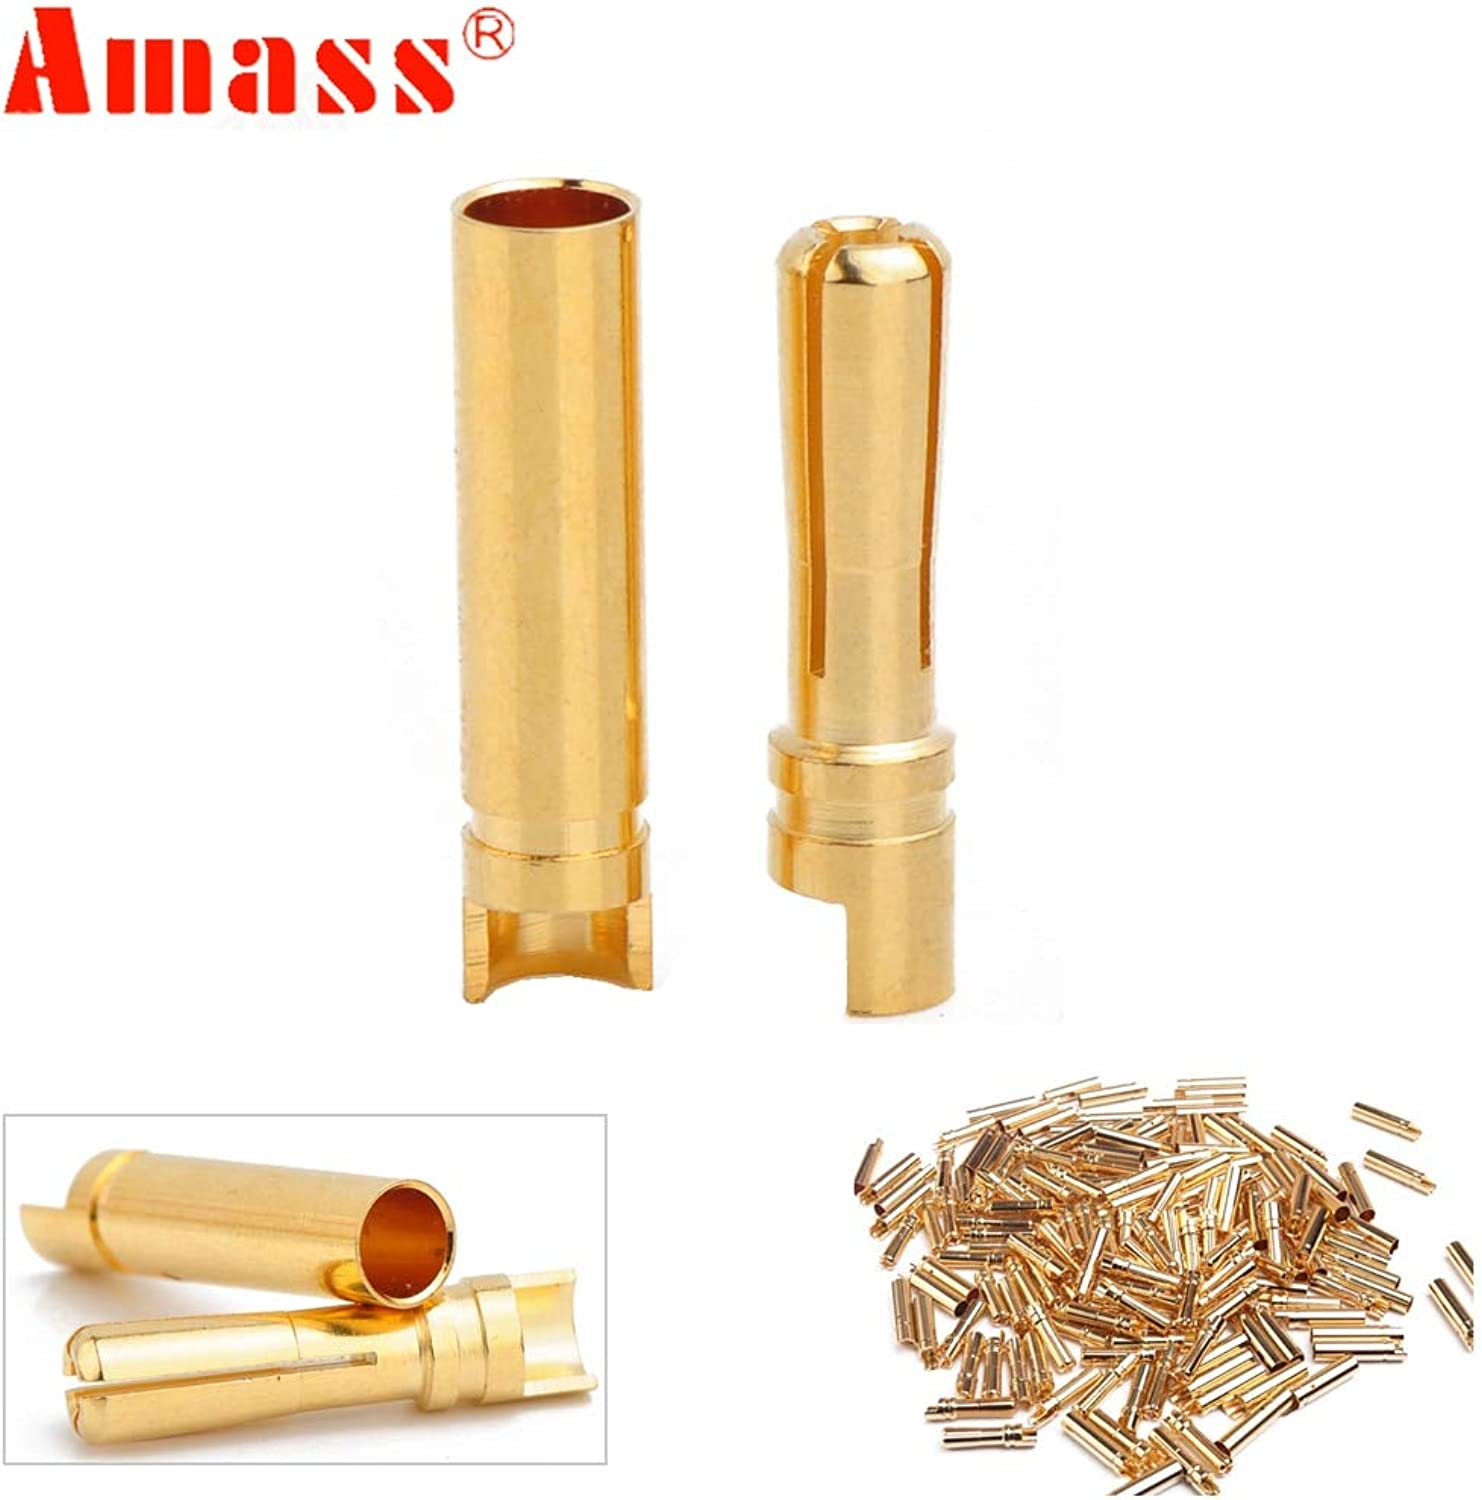 20pcs lot Amass 4.0mm 4mm gold Plated Bullet Connector for RC Battery ESC and Motor Helicopter Boat Quadcopter (10 Pair)